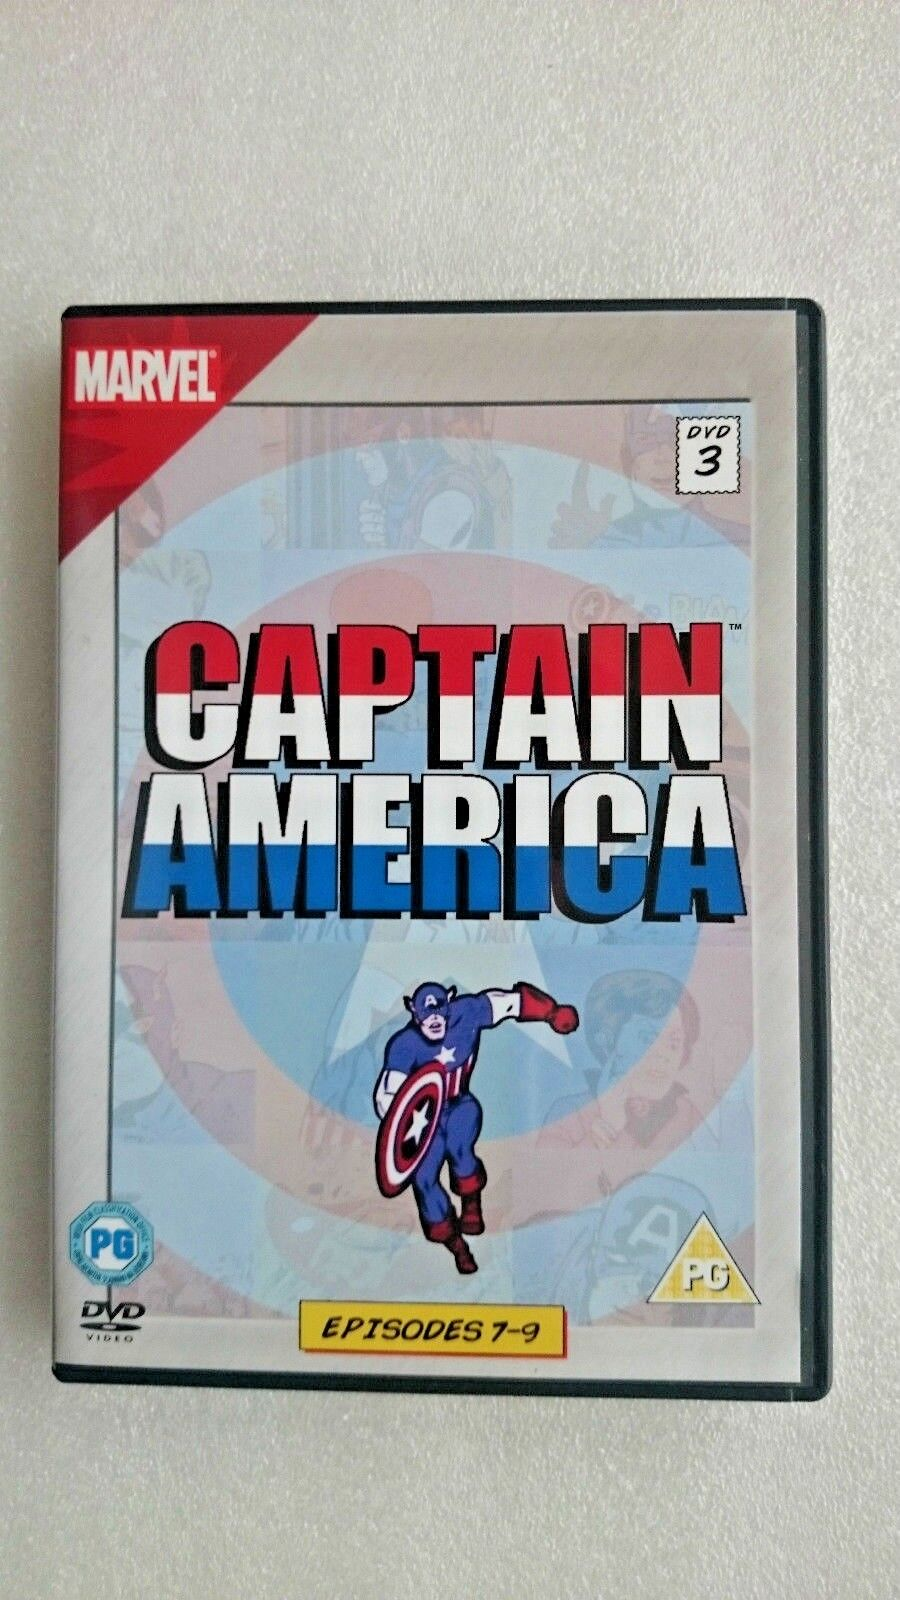 Captain America Episodes 7-9 Vol 3 DVD